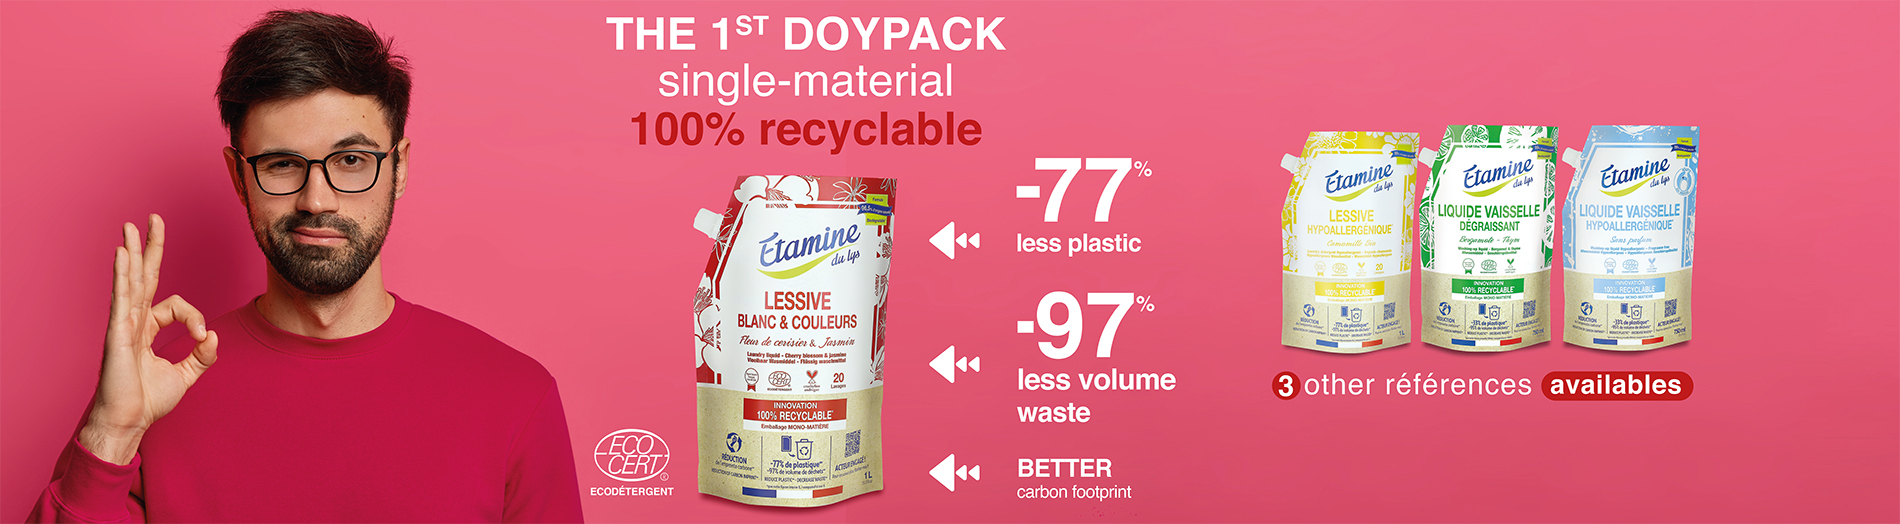 doypack 100% recyclable